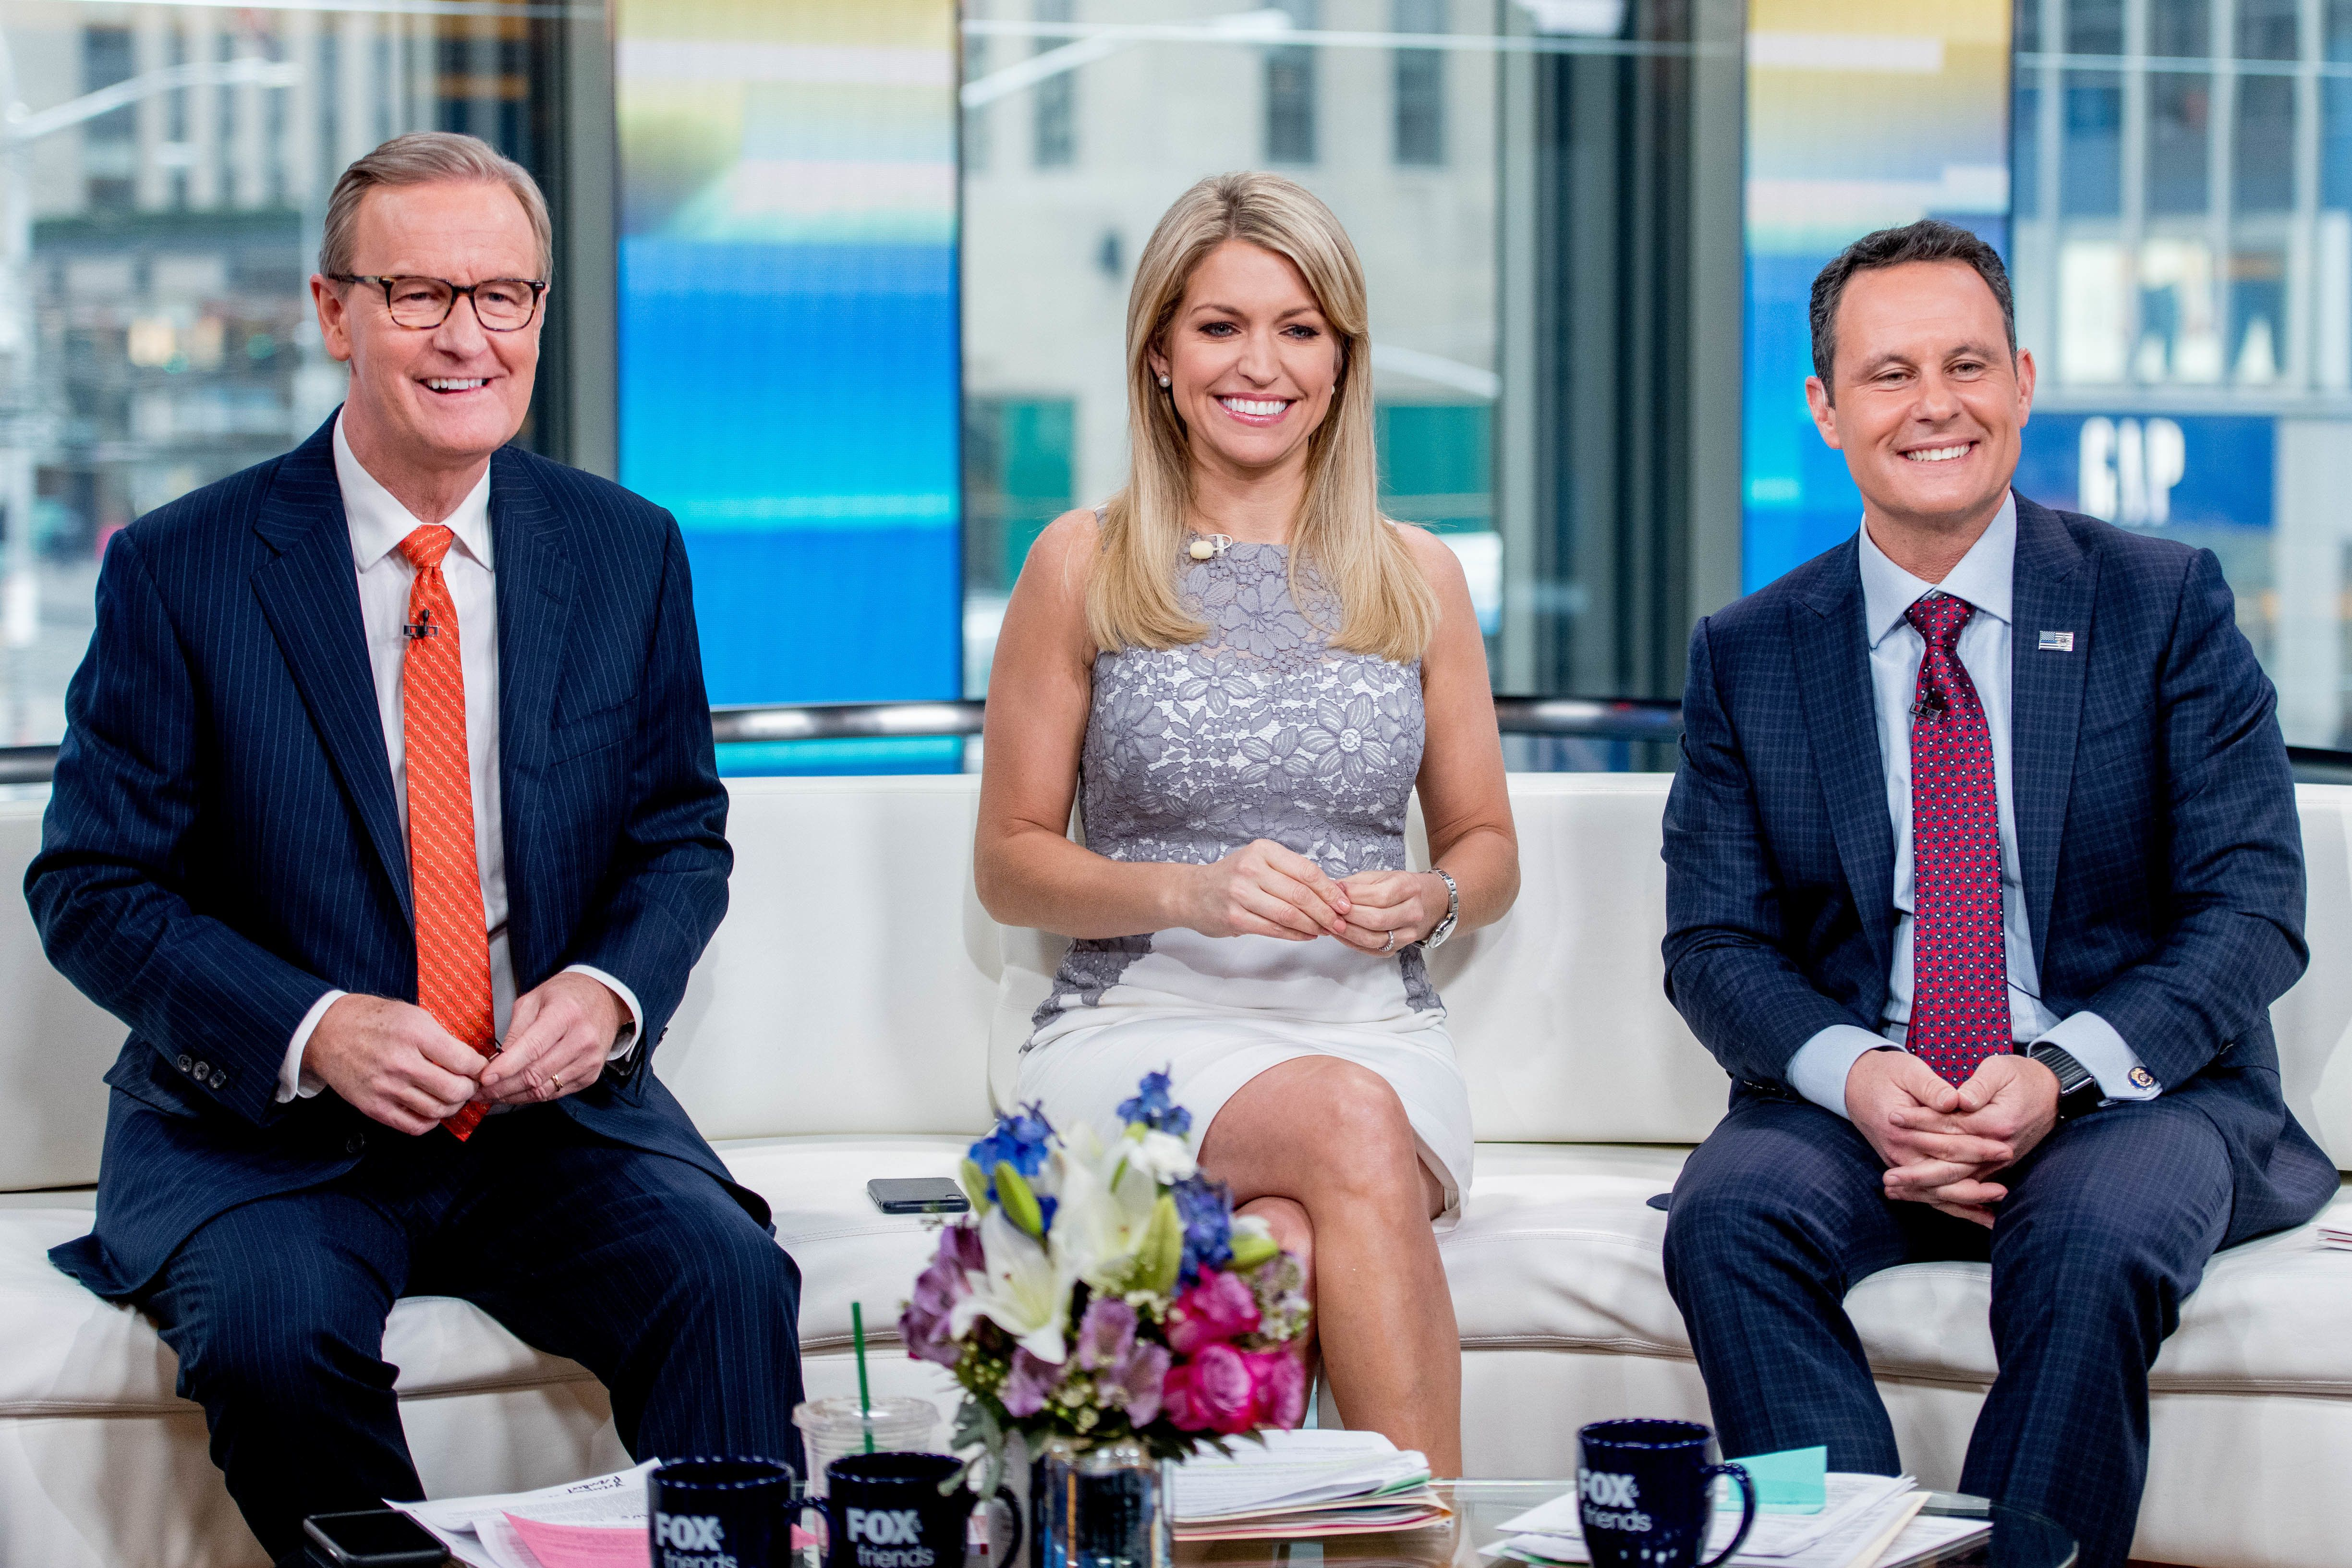 NEW YORK, NY - MARCH 19:  Steve Doocy, Ainsley Earhardt and Brian Kilmeade of Fox & Friends discuss 'Maroln Bundo's a day in the life of The Vice President' with Charlotte and Karen Pence at Fox News Studios on March 19, 2018 in New York City.  (Photo by Roy Rochlin/Getty Images)